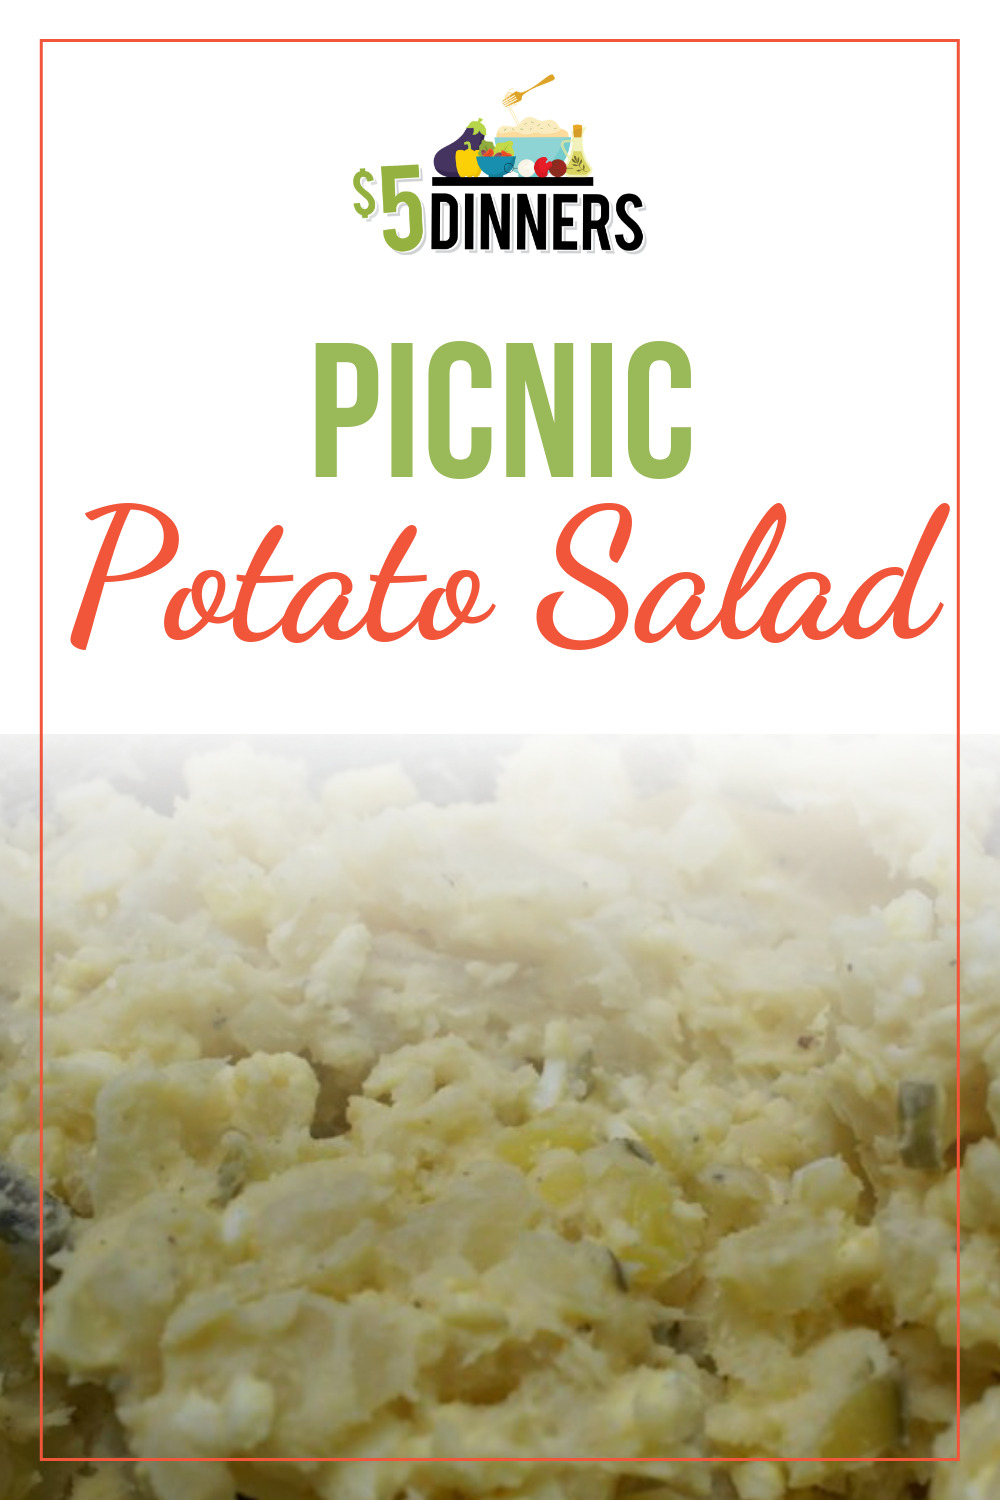 July 4th Potato Salad